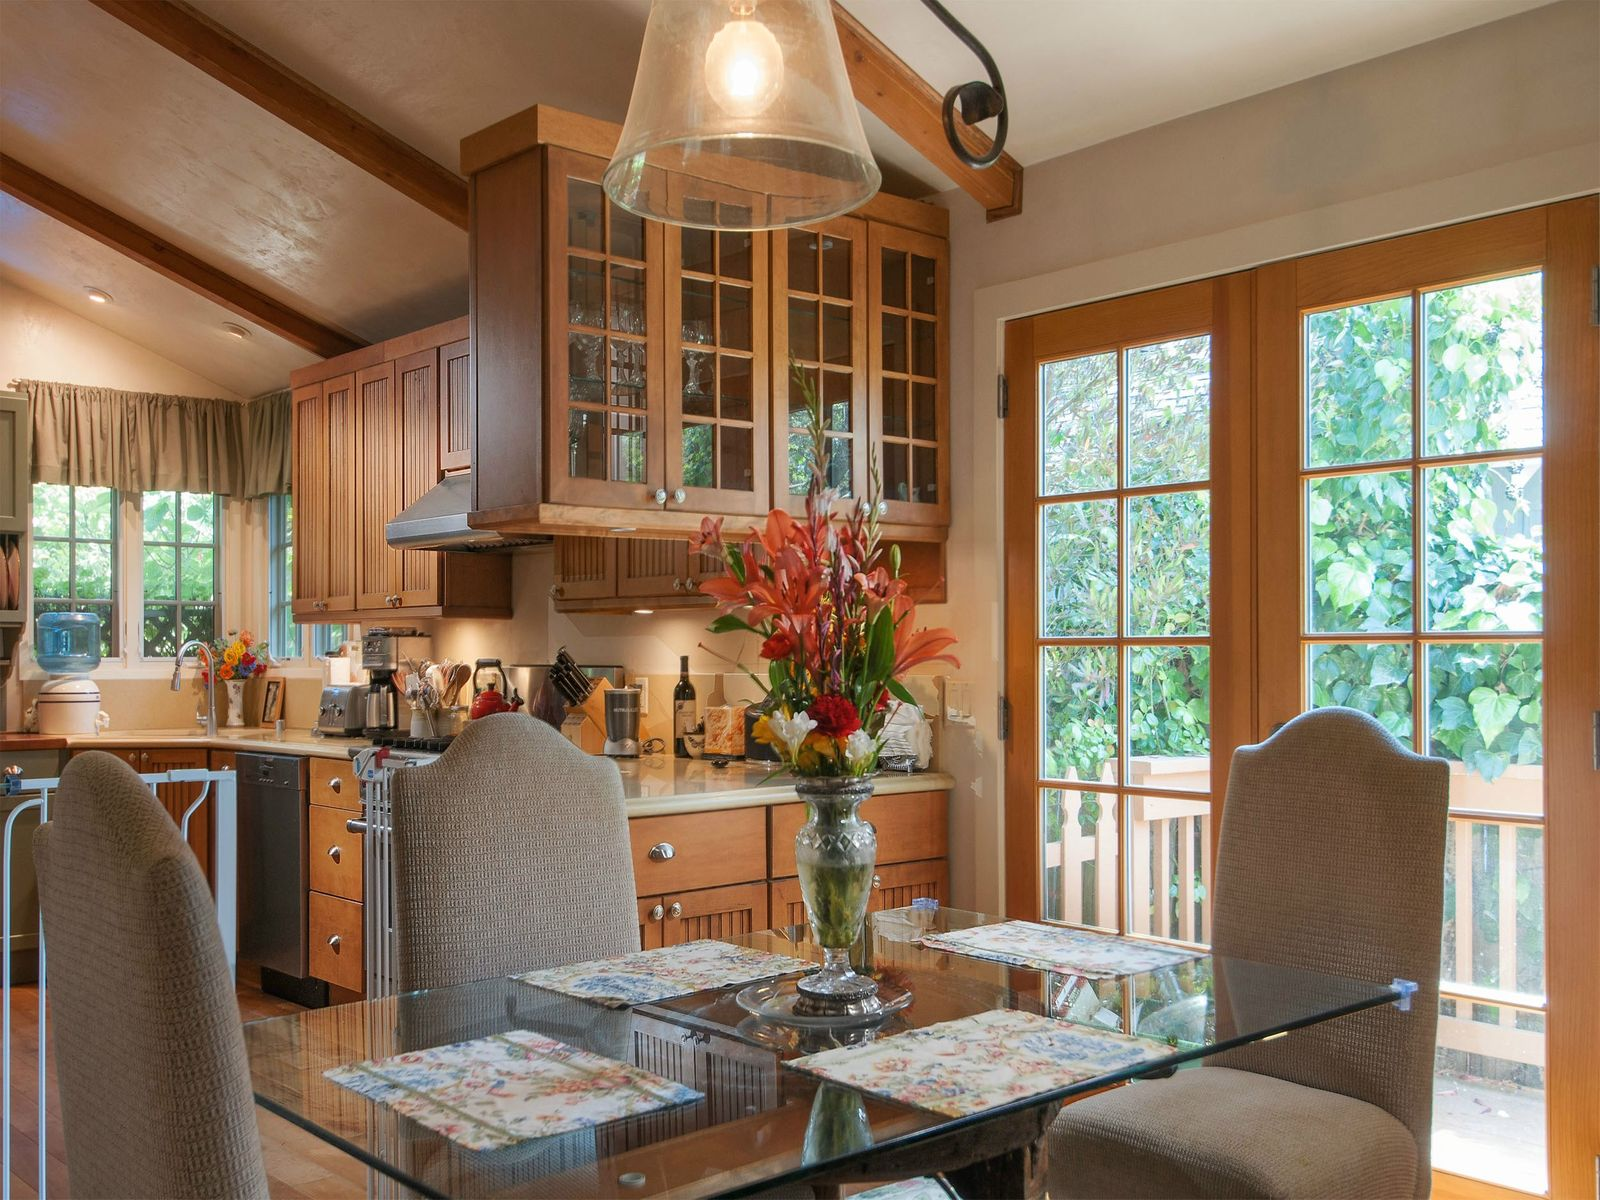 Carmel-By-The-Sea Opportunity